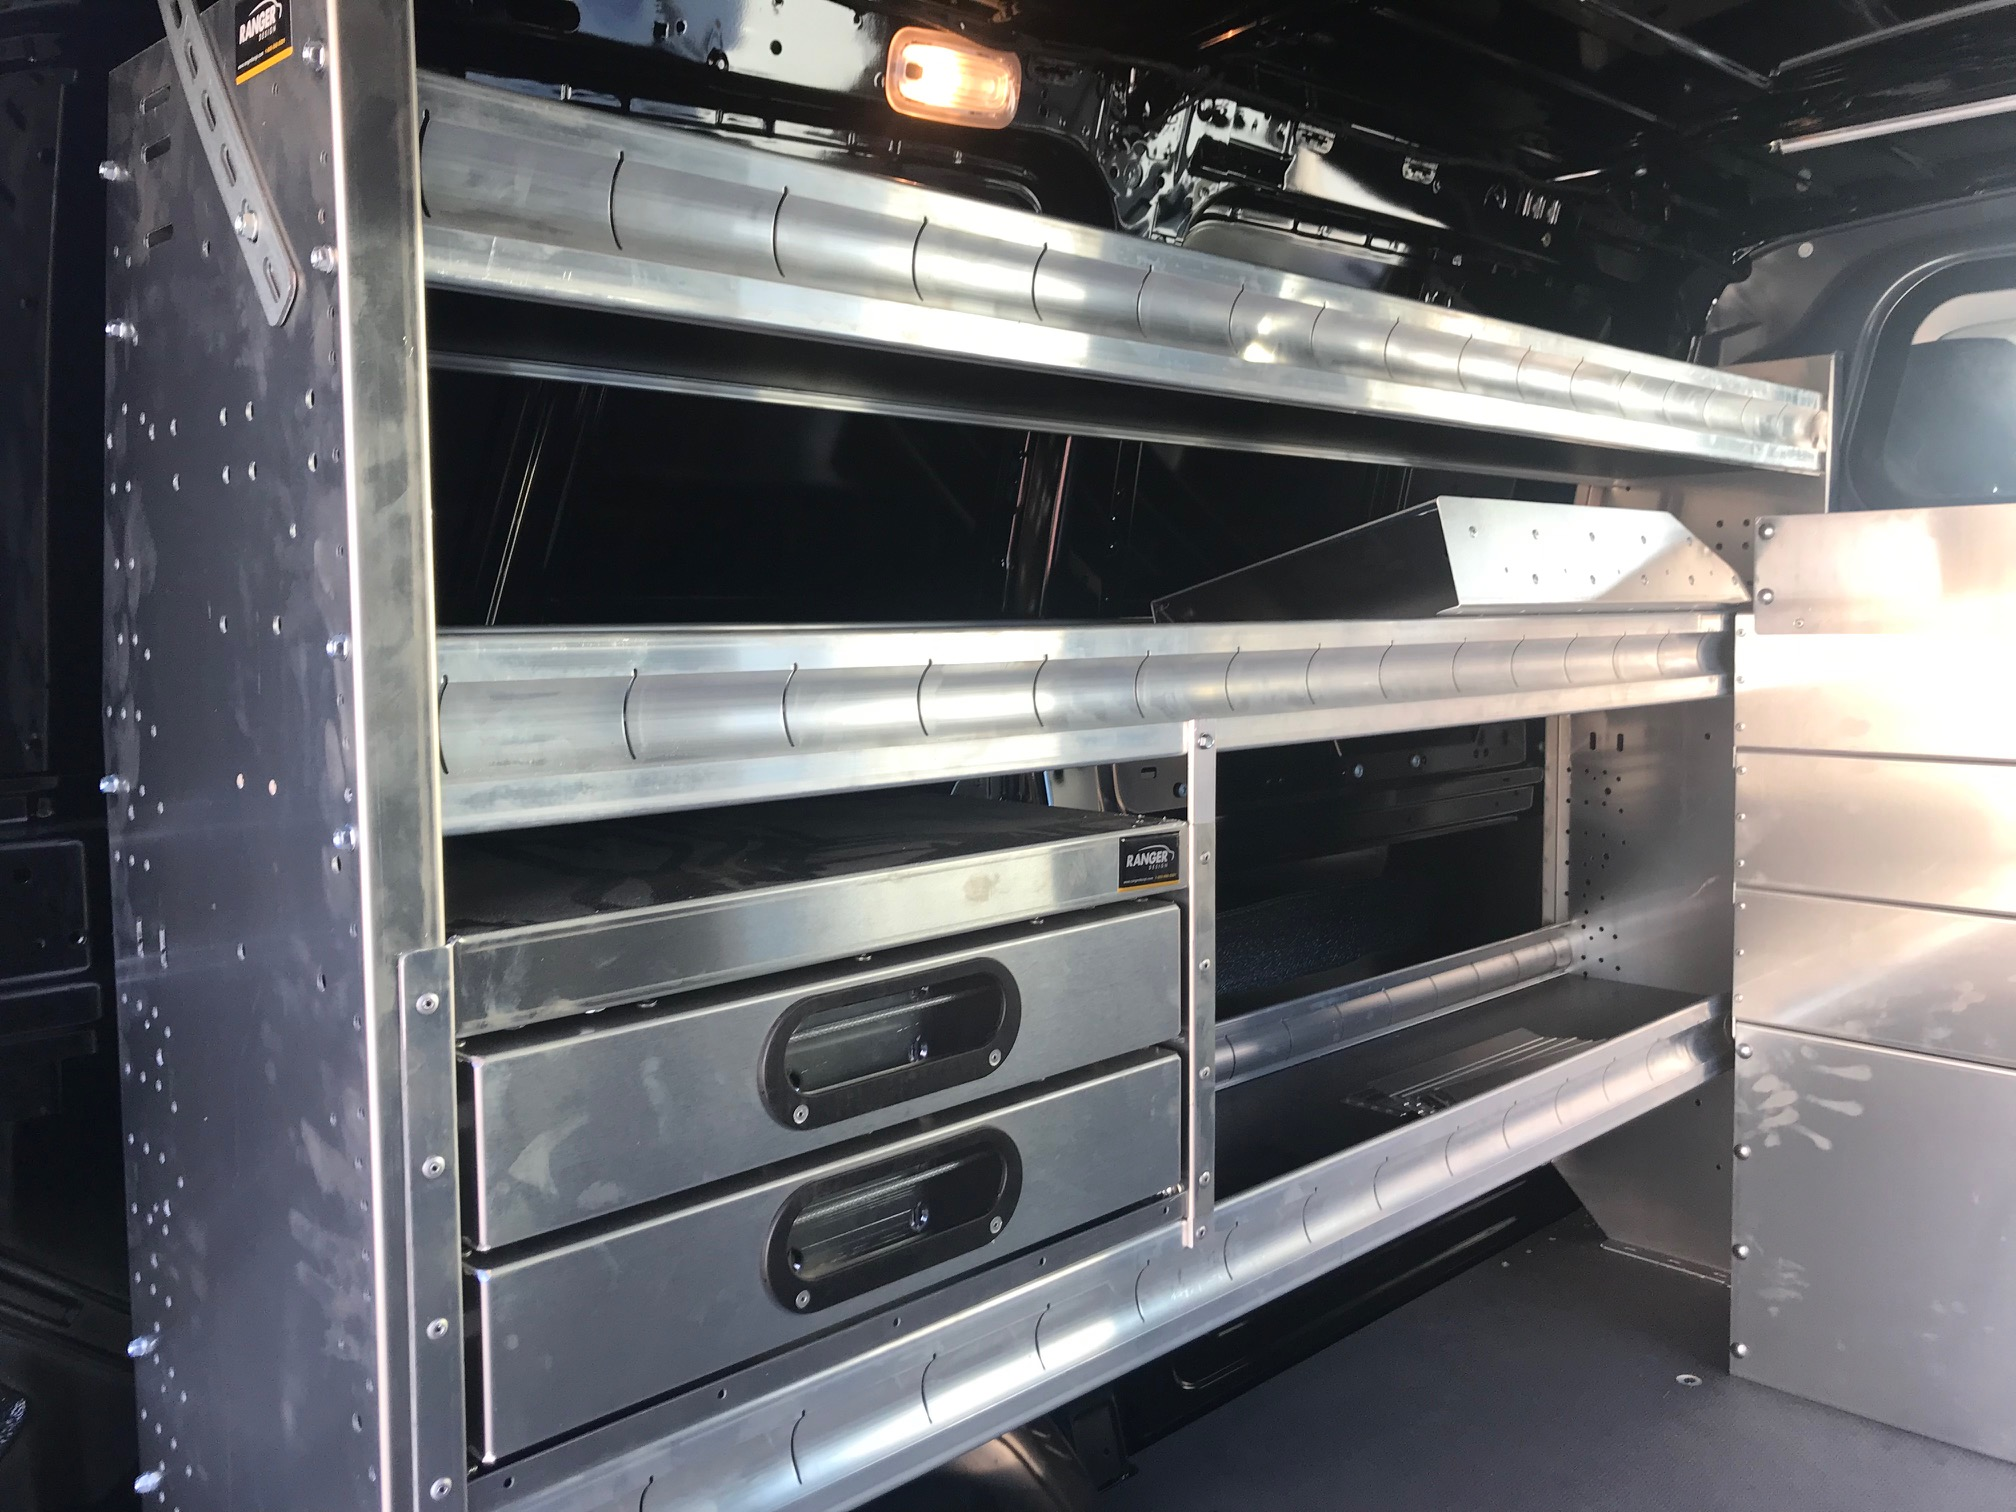 metal shelving and drawers in the back of work van